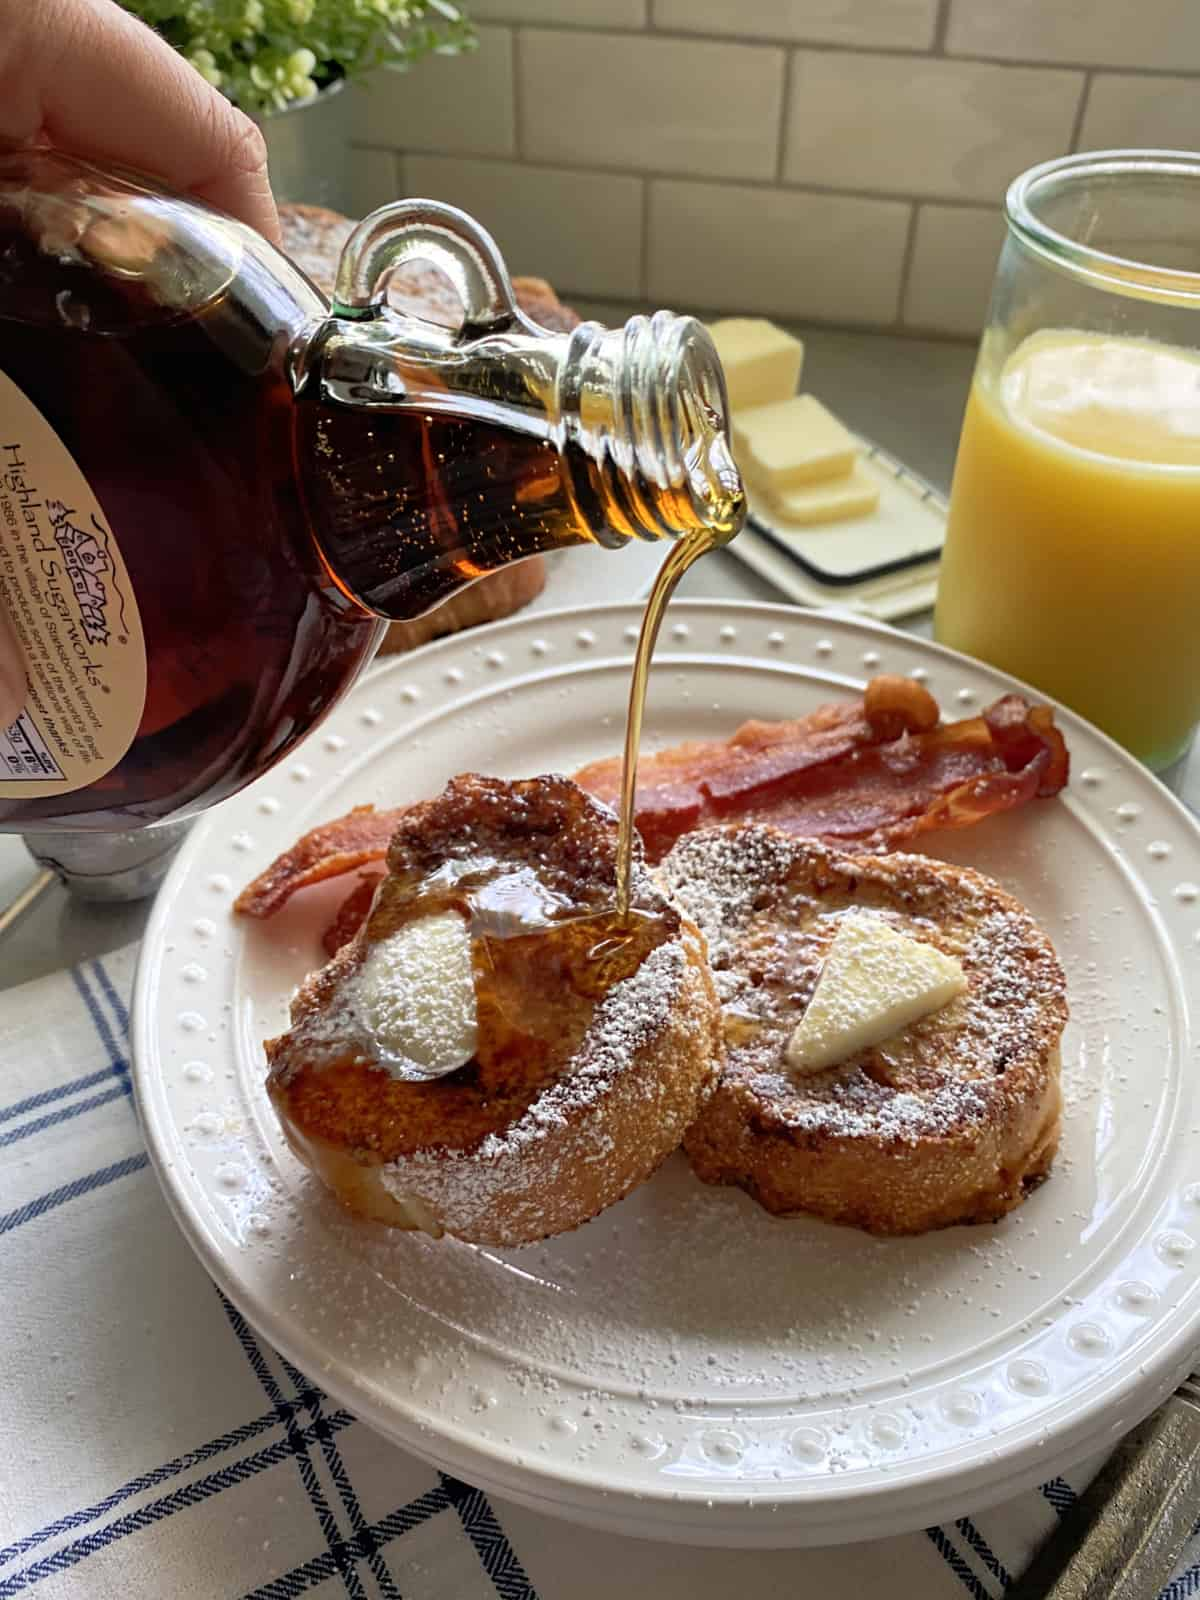 Hand pouring syrup over slices of french toast on a white plate.